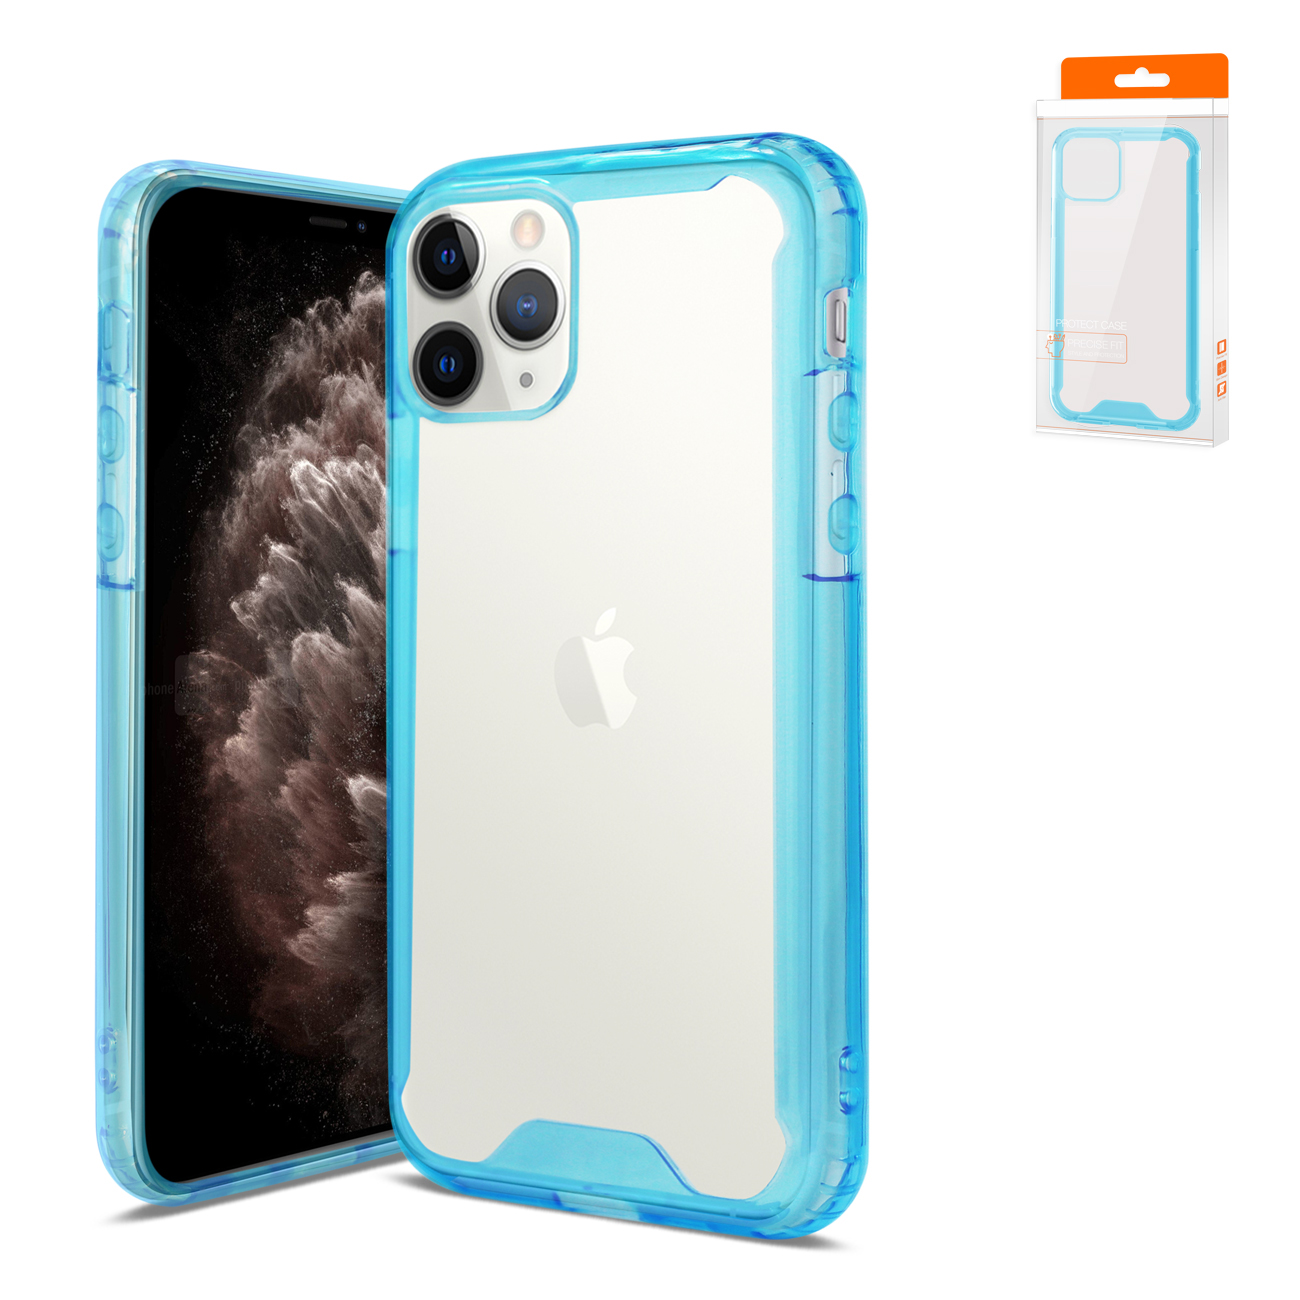 APPLE IPHONE 11 PRO High Quality TPU Case In Blue